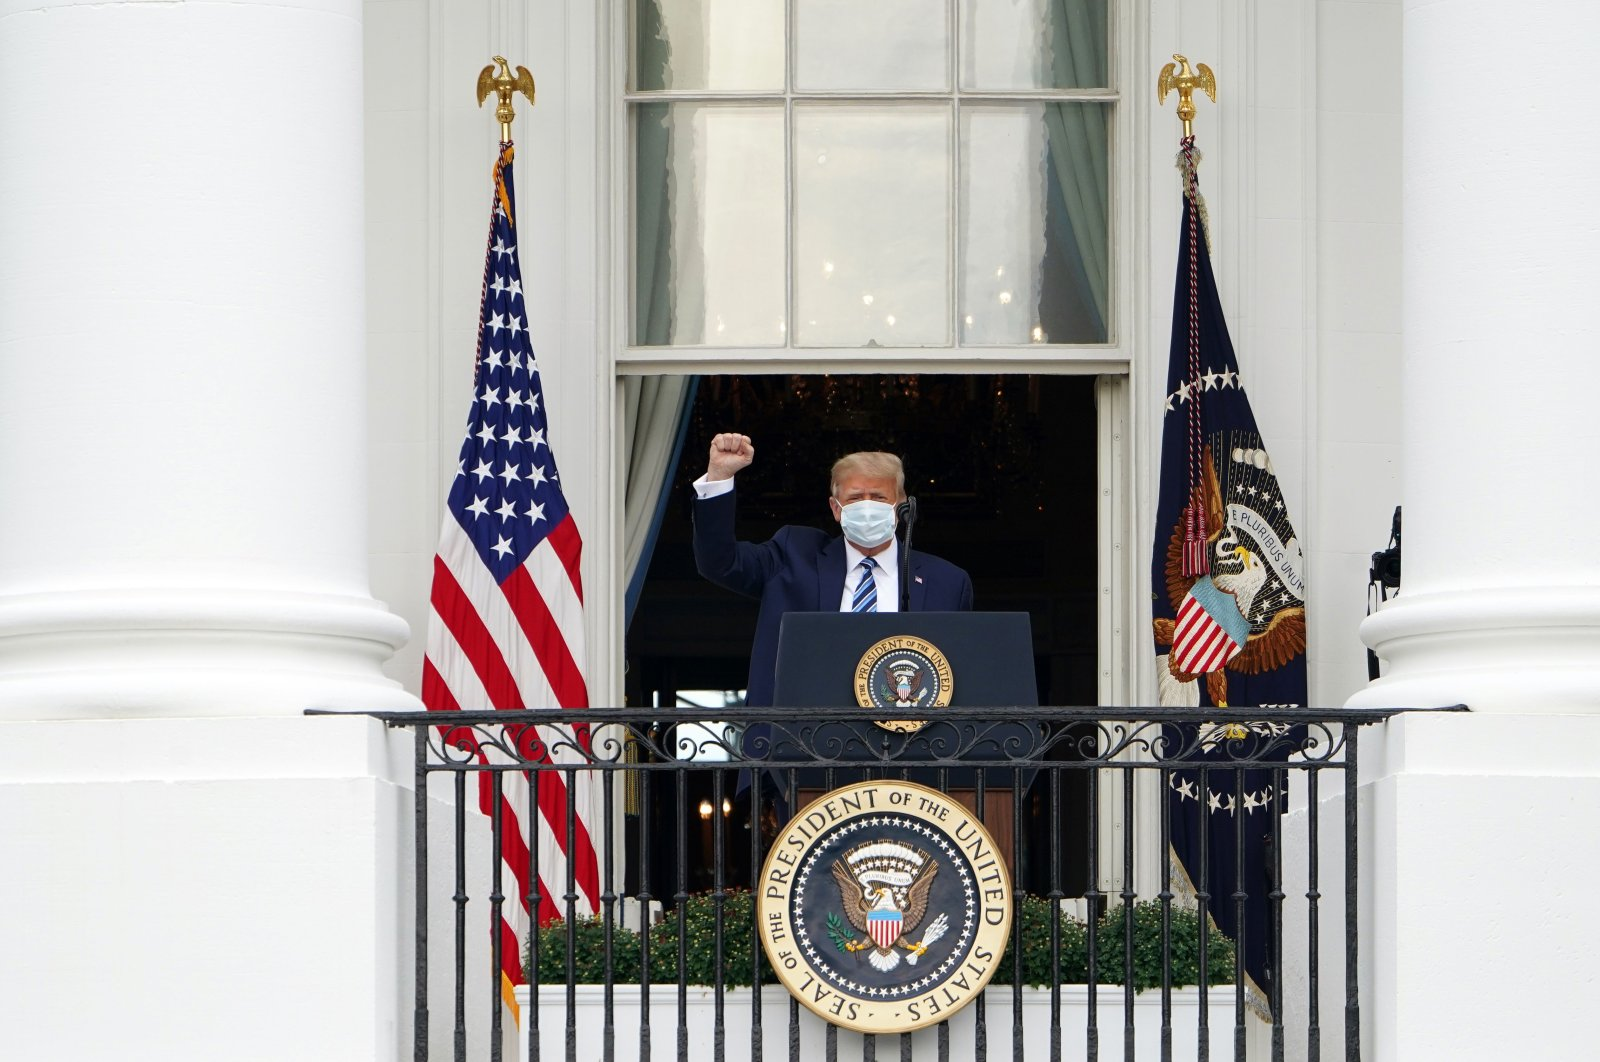 U.S. President Donald Trump arrives to speak about law and order from the South Portico of the White House, Washington, D.C., Oct. 10, 2020. (AFP Photo)